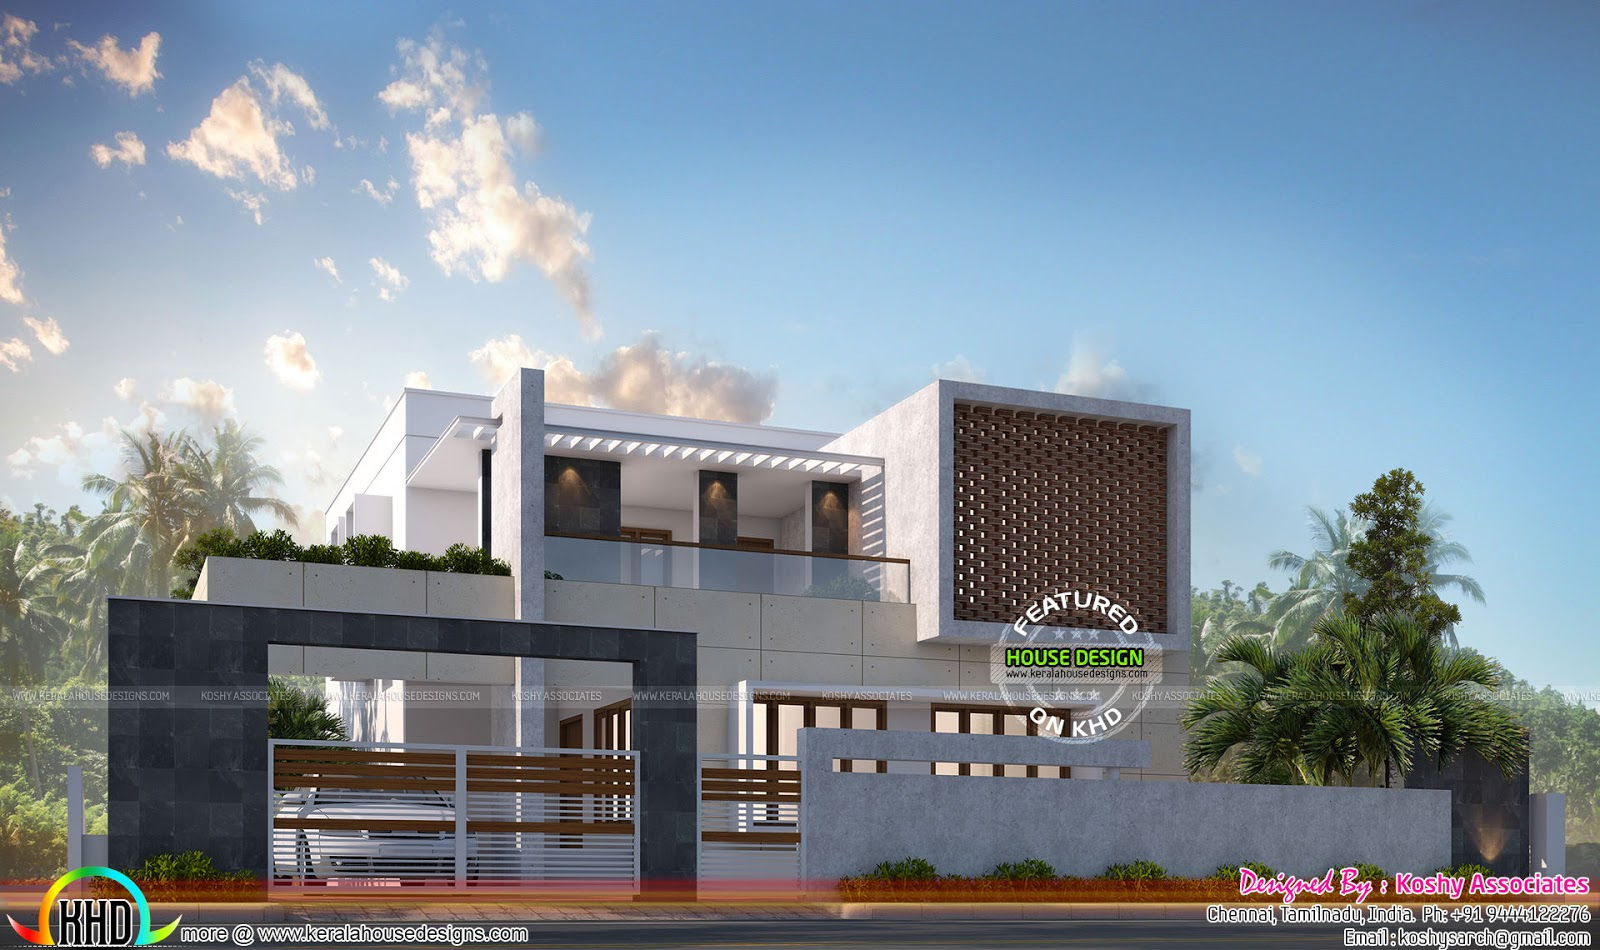 House architecture plans chennai house design plans House architecture chennai